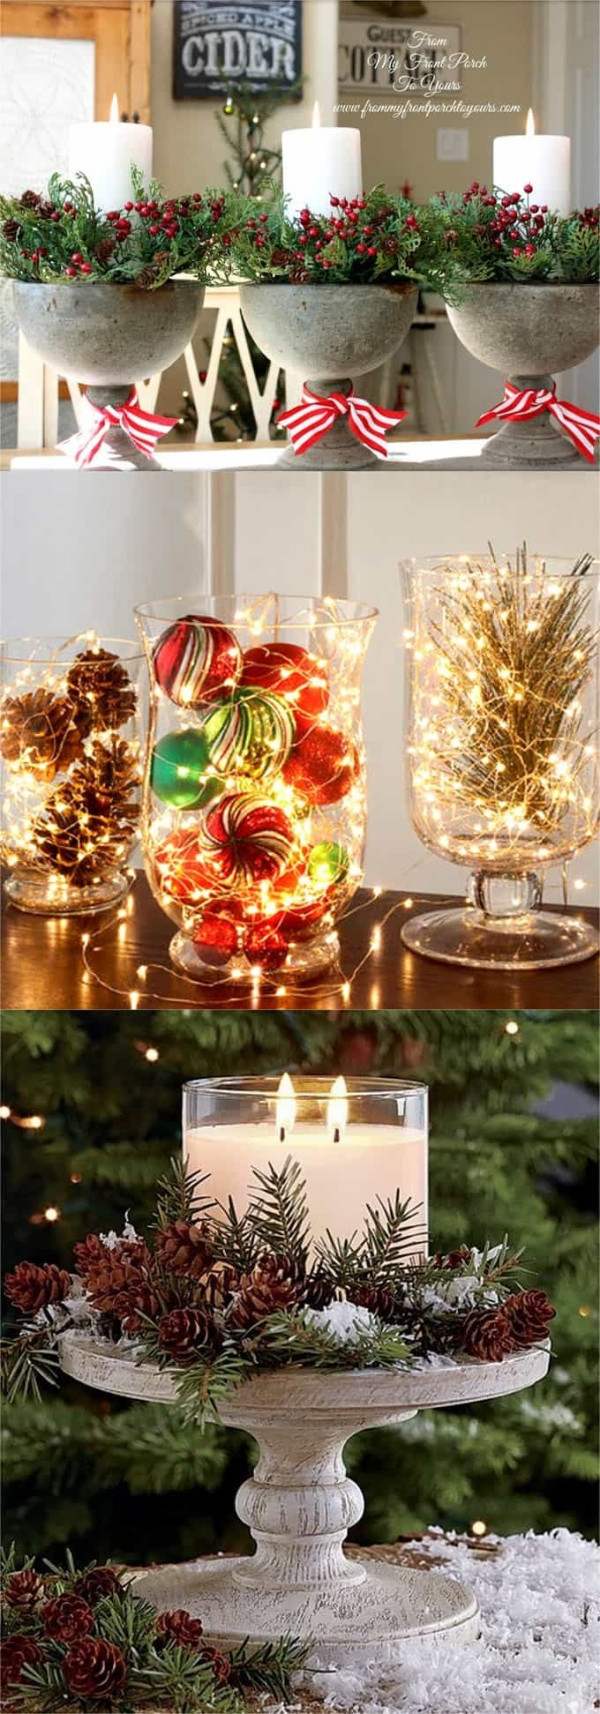 Diy Thanksgiving Table Decorations  27 gorgeous & easy DIY Thanksgiving and Christmas table